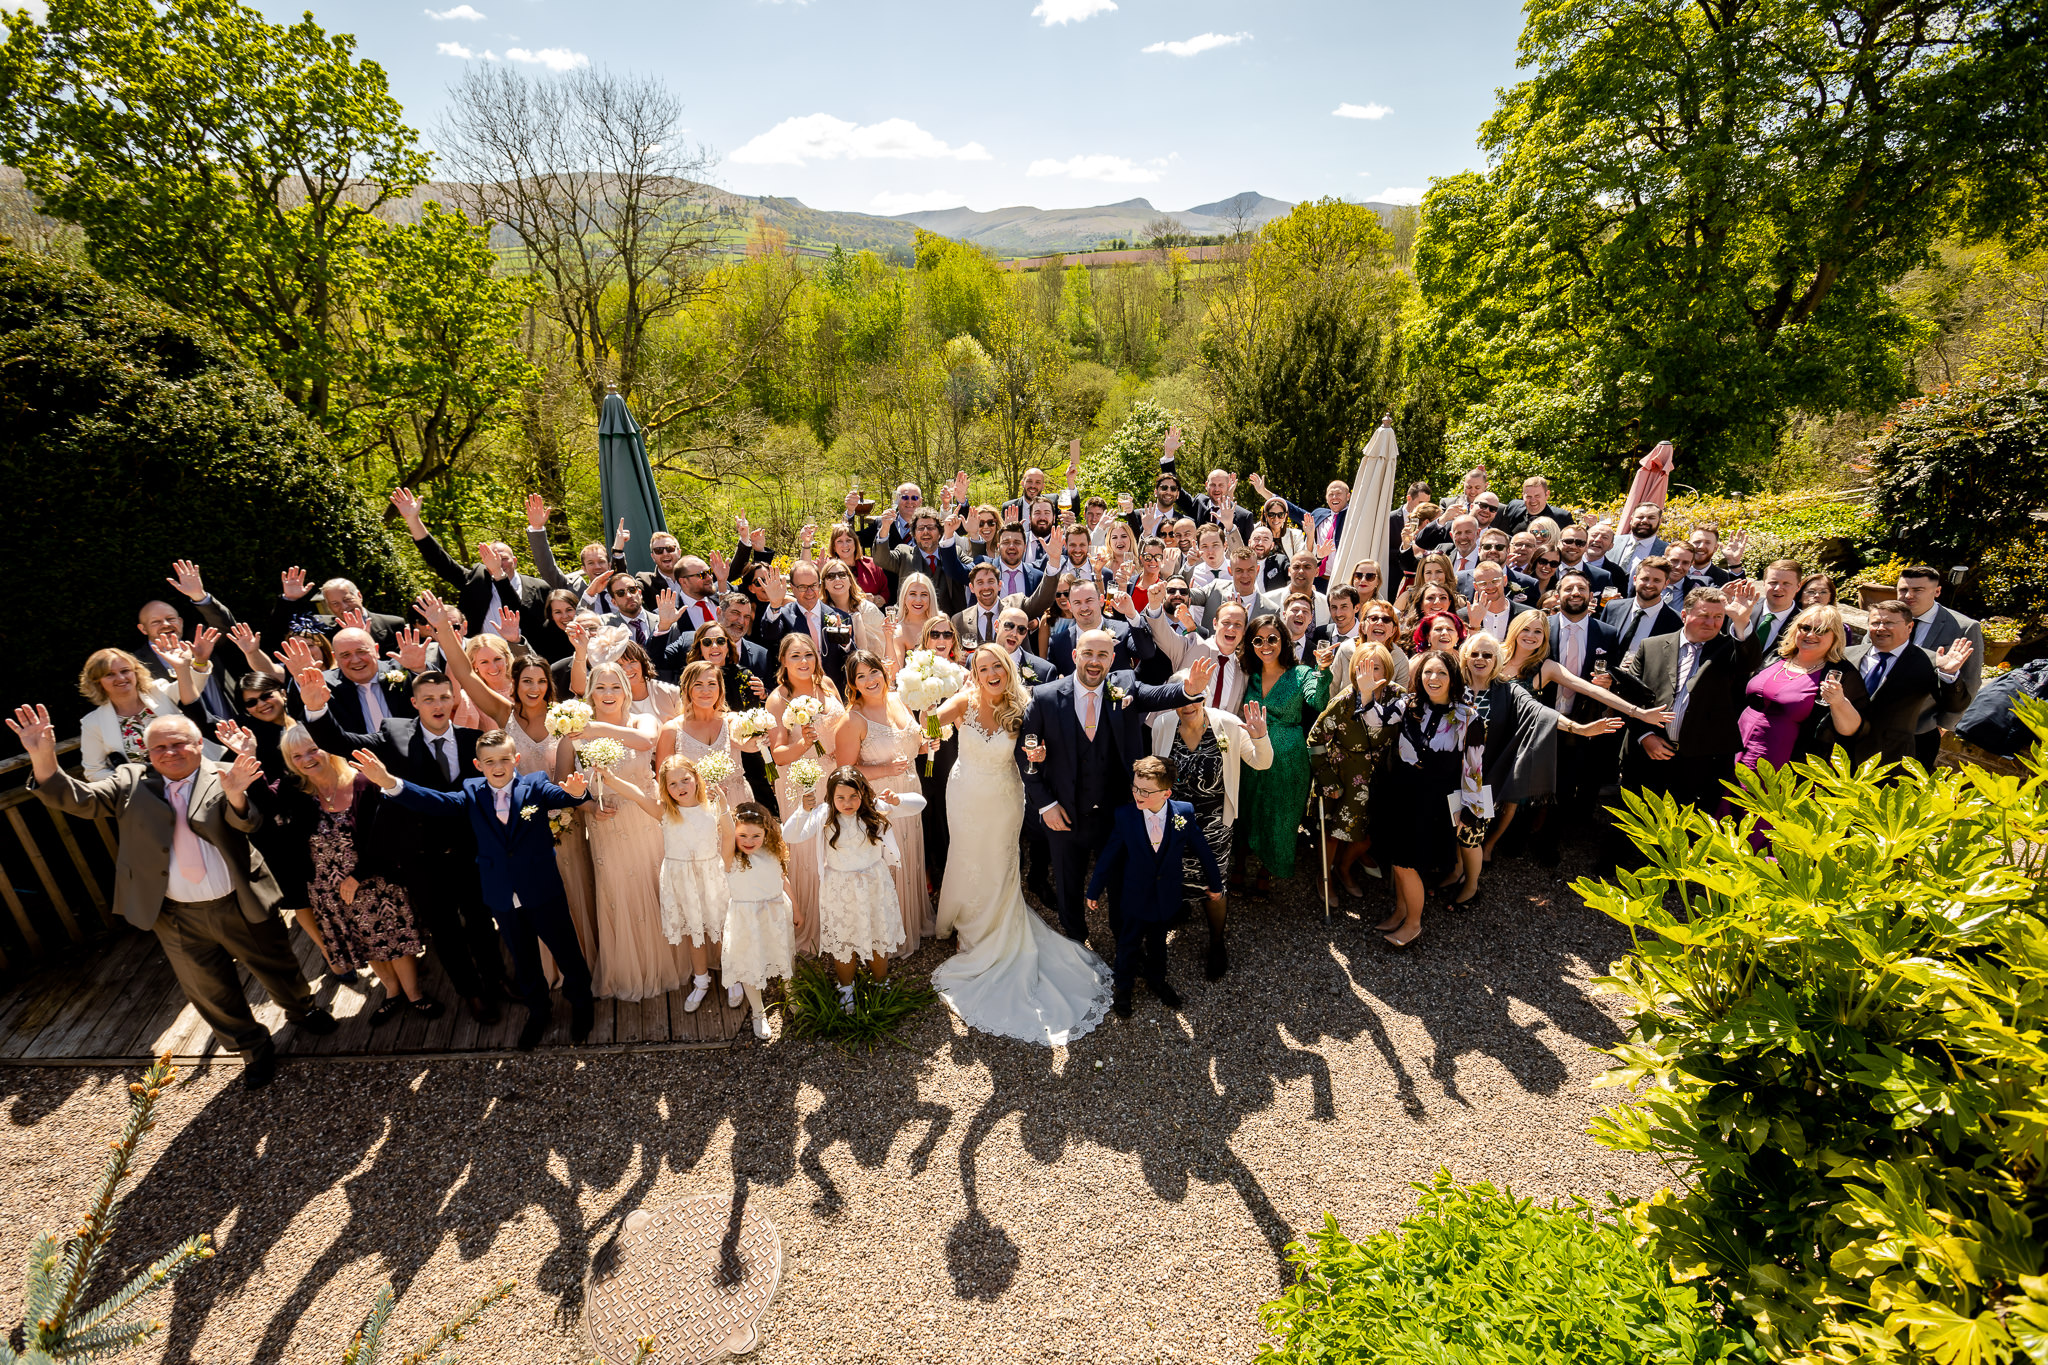 Peterstone court wedding group photo